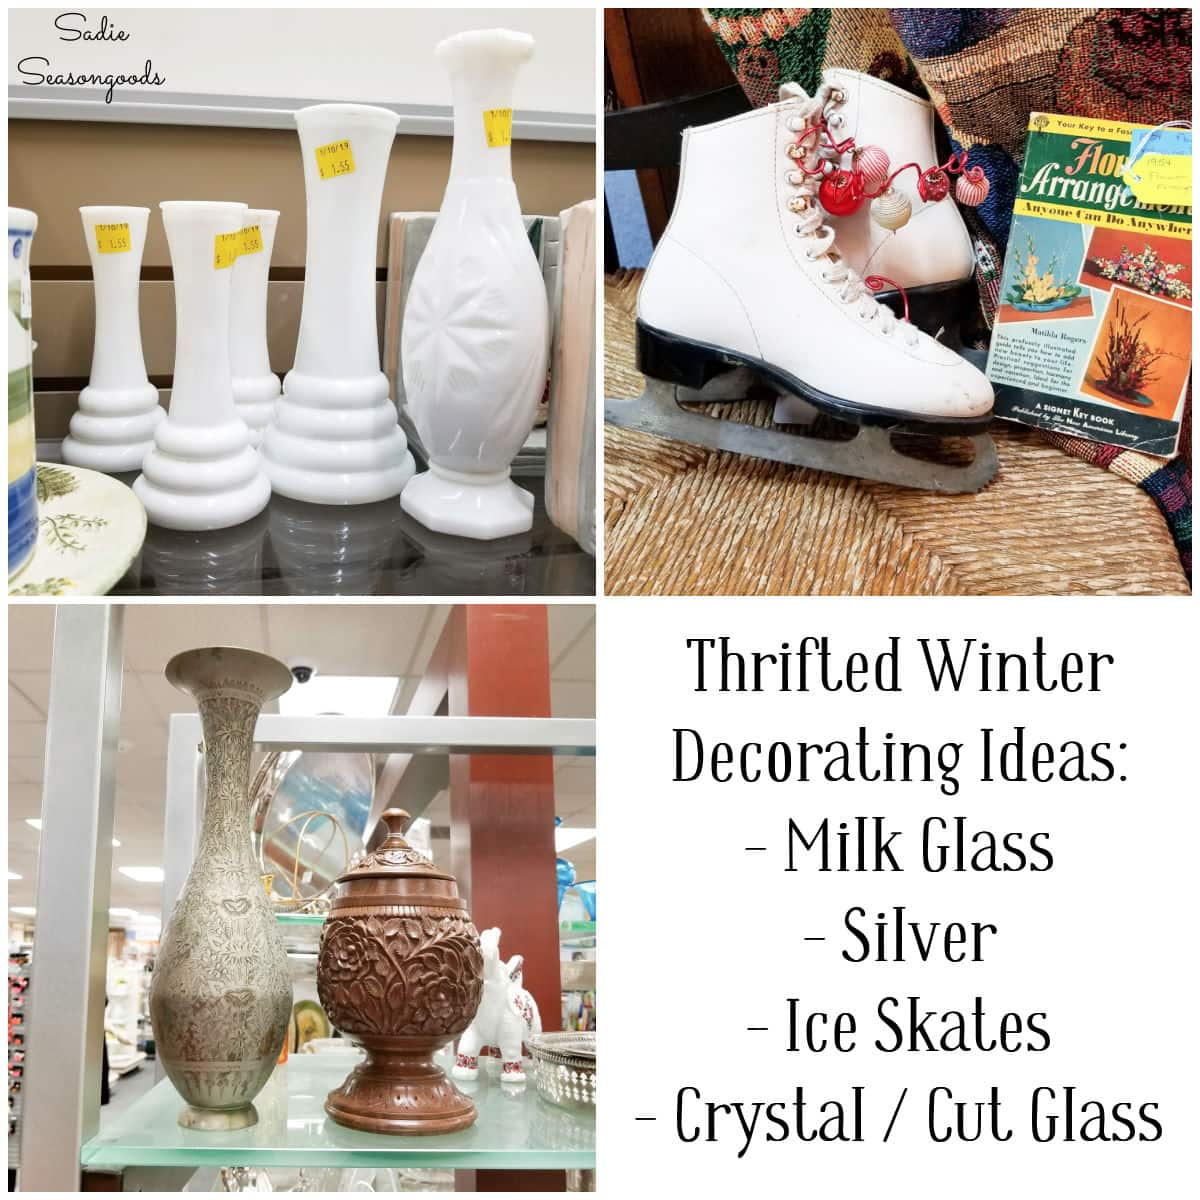 Winter decorating ideas from thrift stores and antique malls